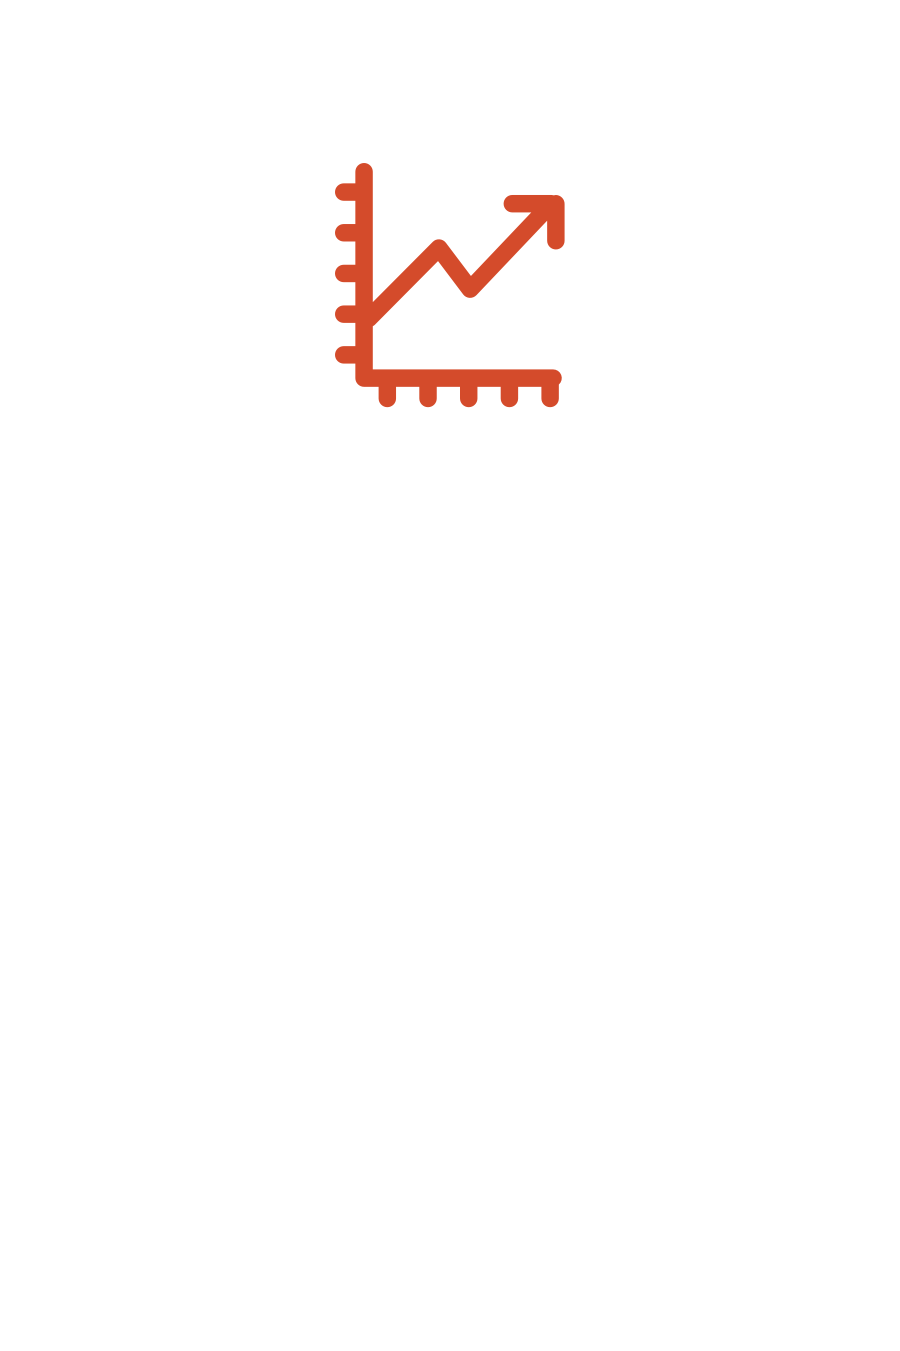 Improve Productivity Section.png